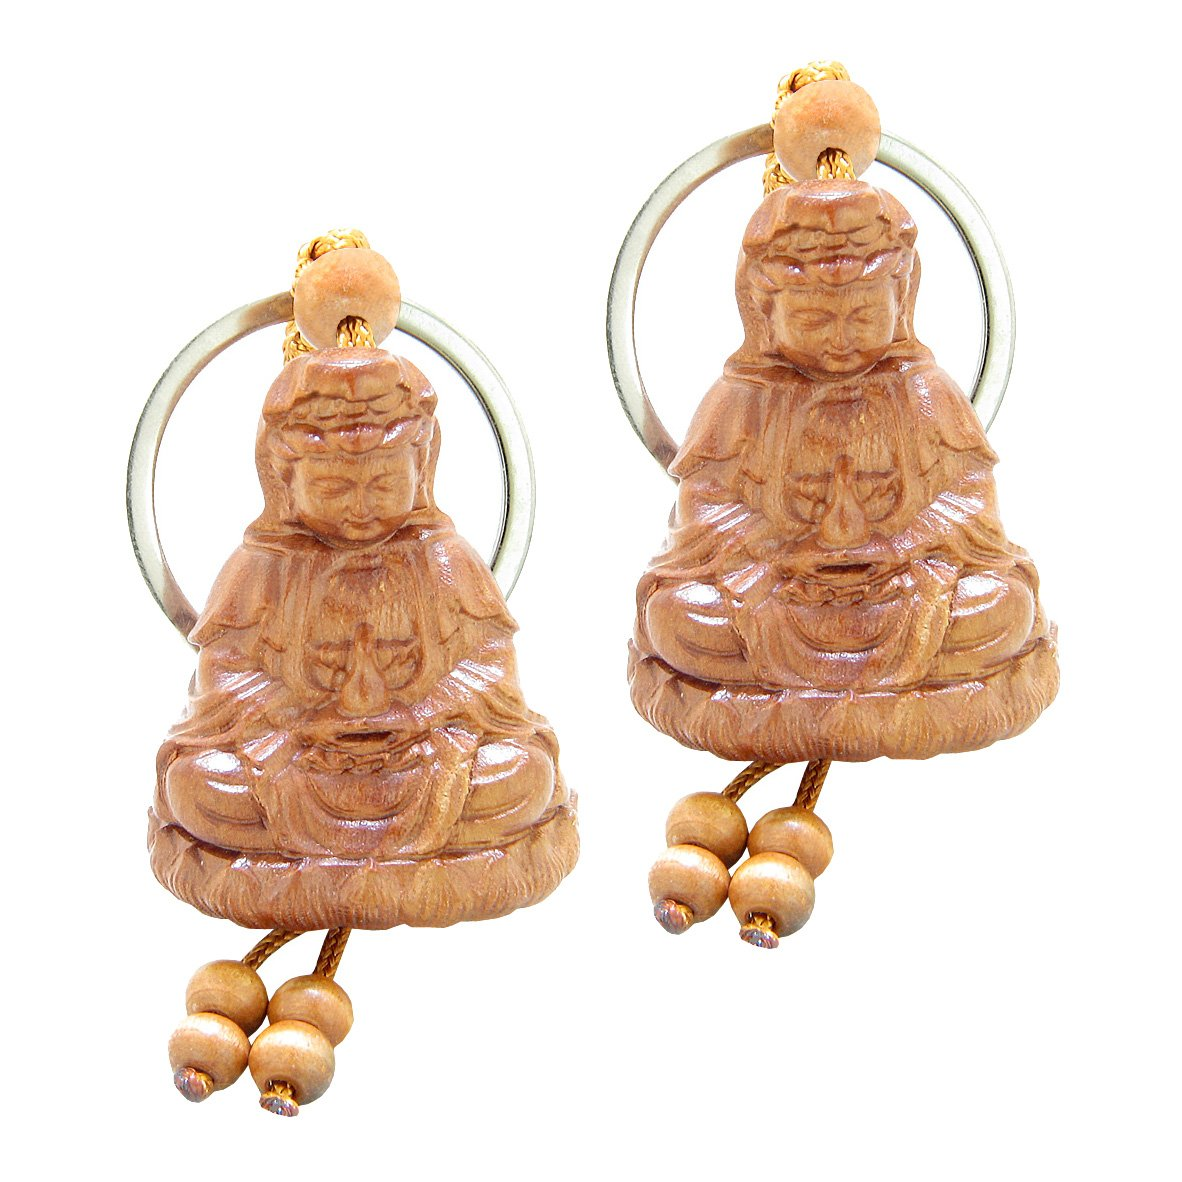 Ancient Lucky Kwan Yin Quan Tibetan Symbols Keychains Jewelry Amulets and Talismans